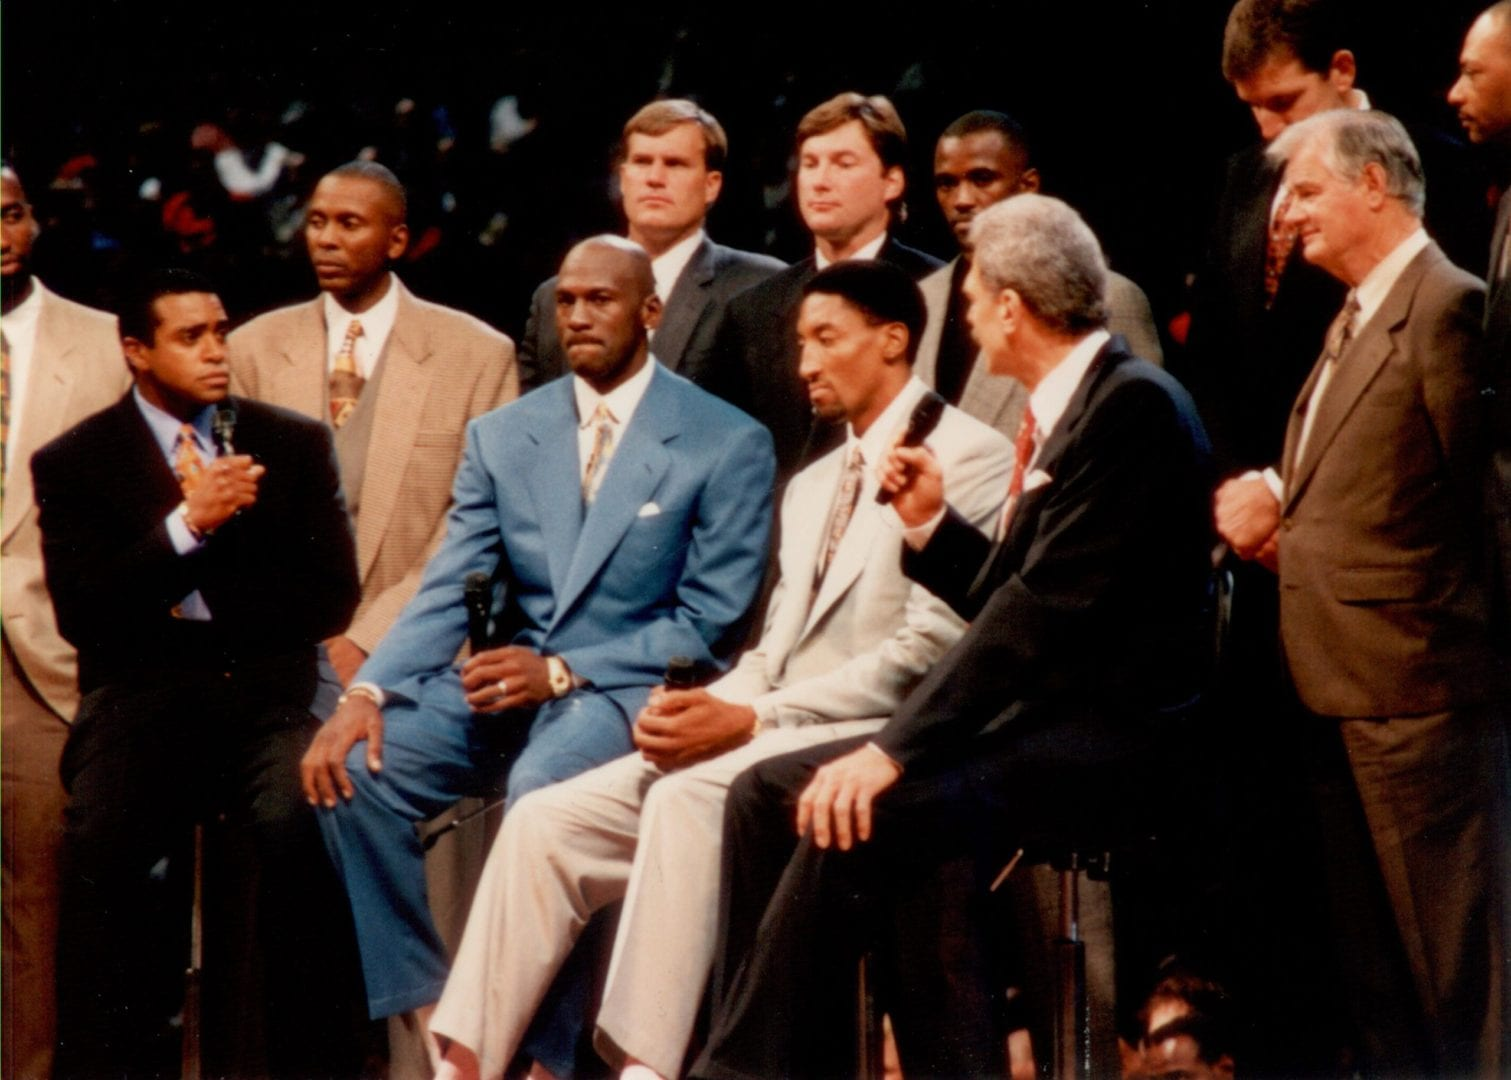 MJ being interviewed for his retirement